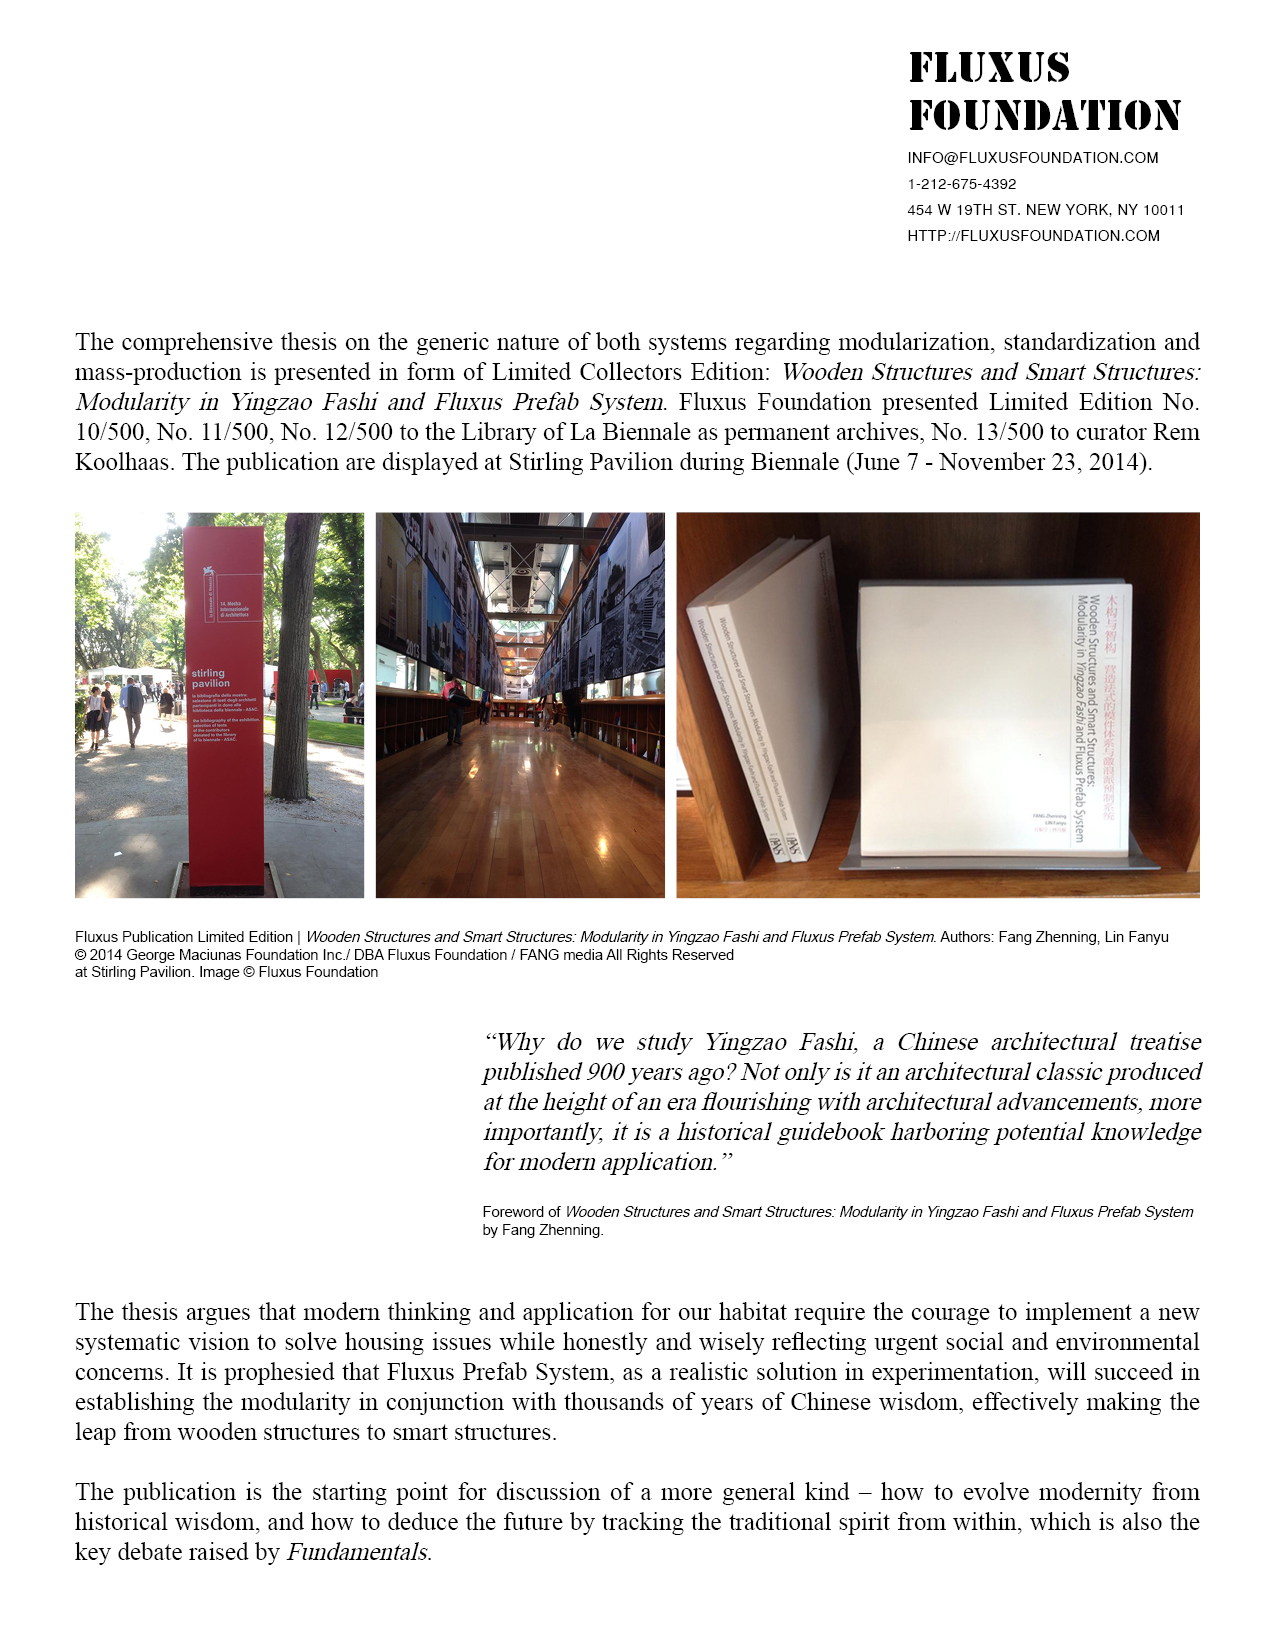 Newsletter_20140617_Fluxus Foundation5